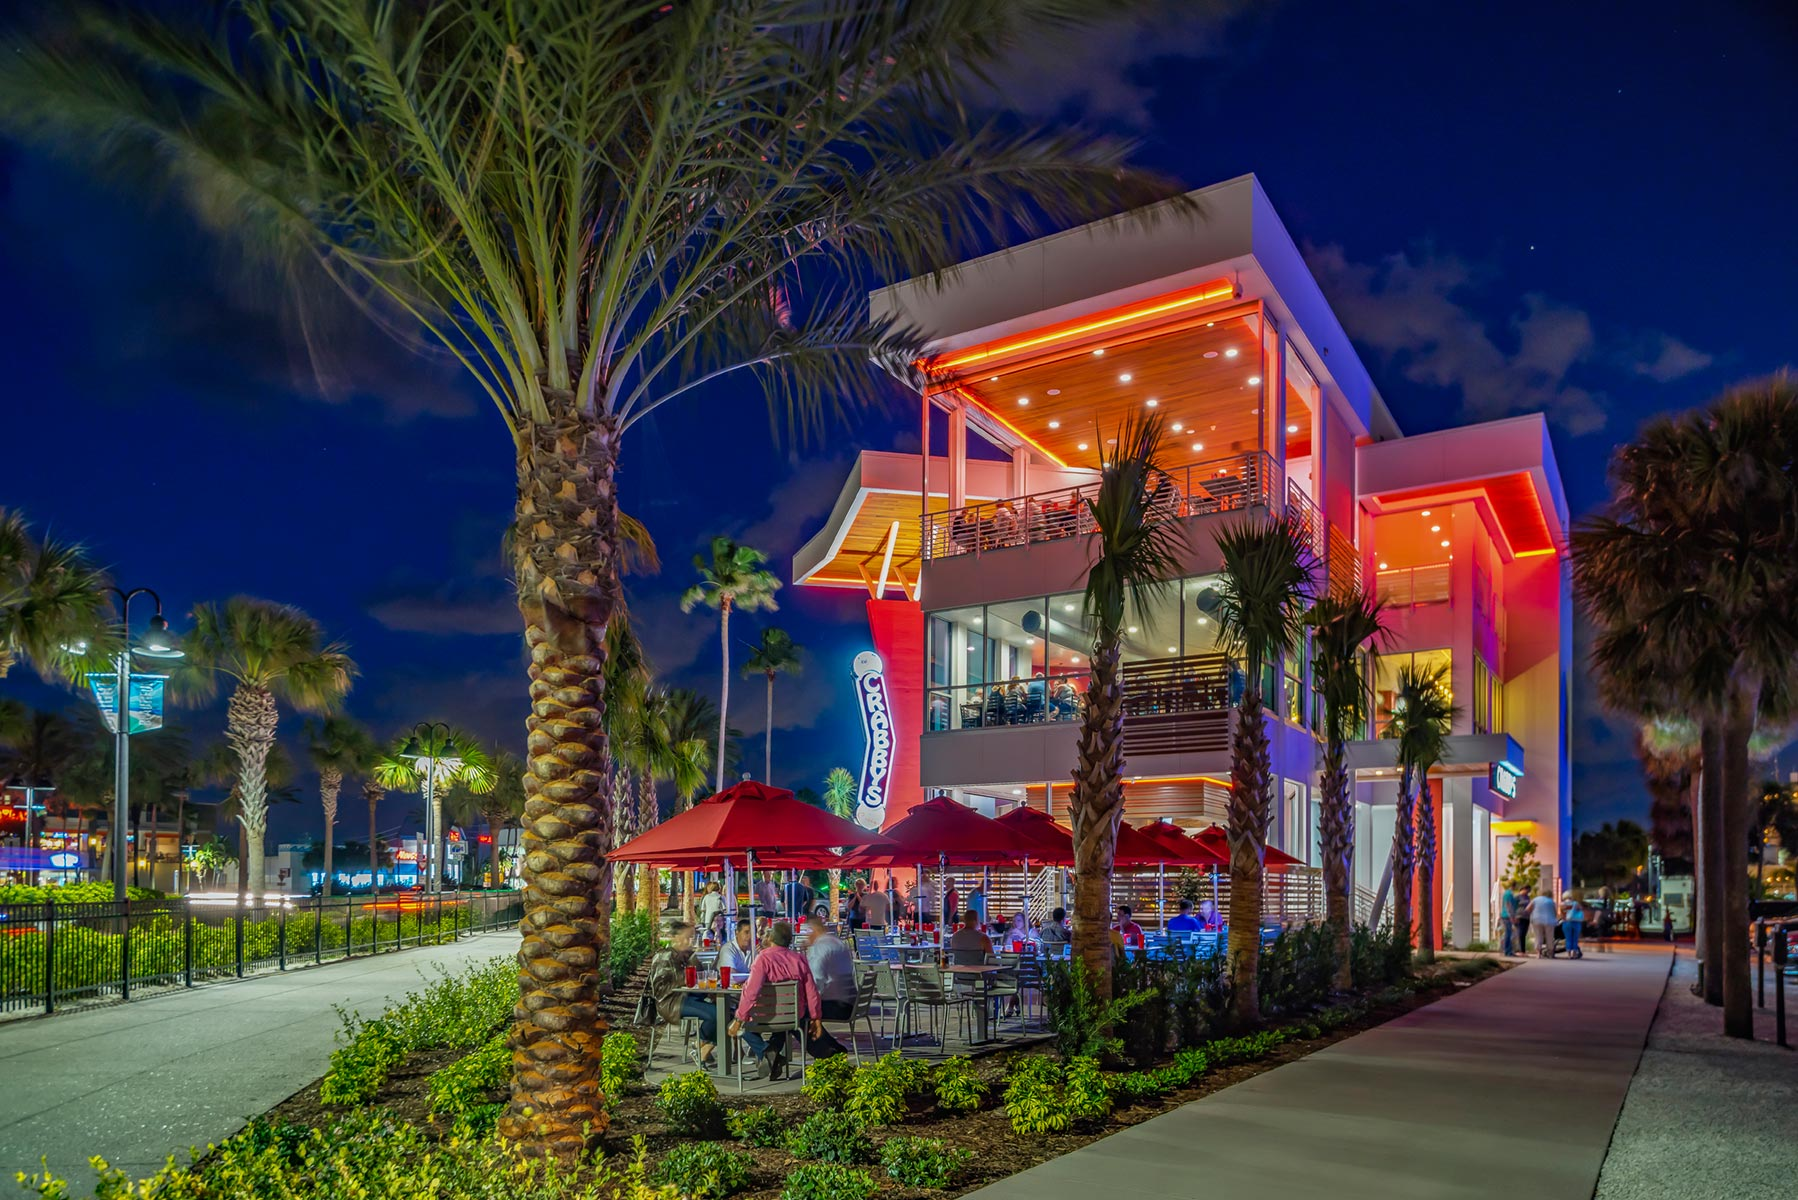 Crabby's Wins 2017 Clearwater Beach Beautification Award